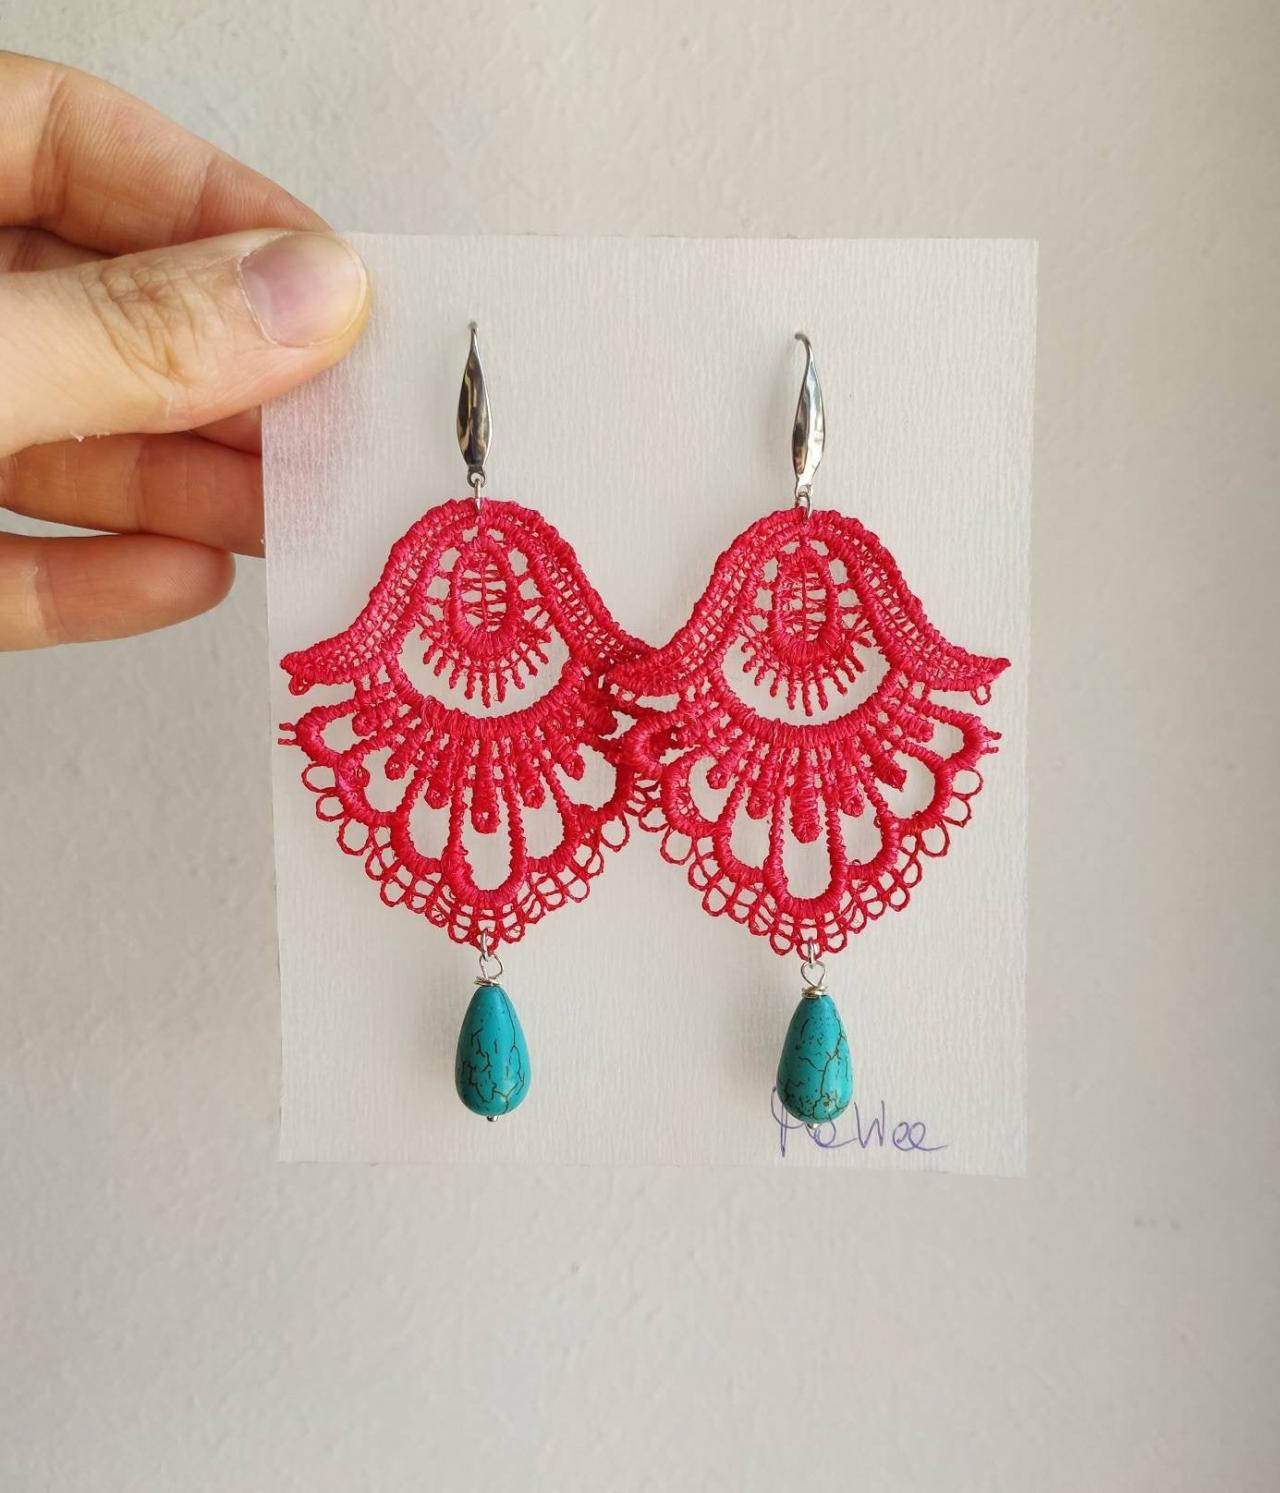 Light red lace earrings hand-dyed with turquoise drop stone and silver steel monachella